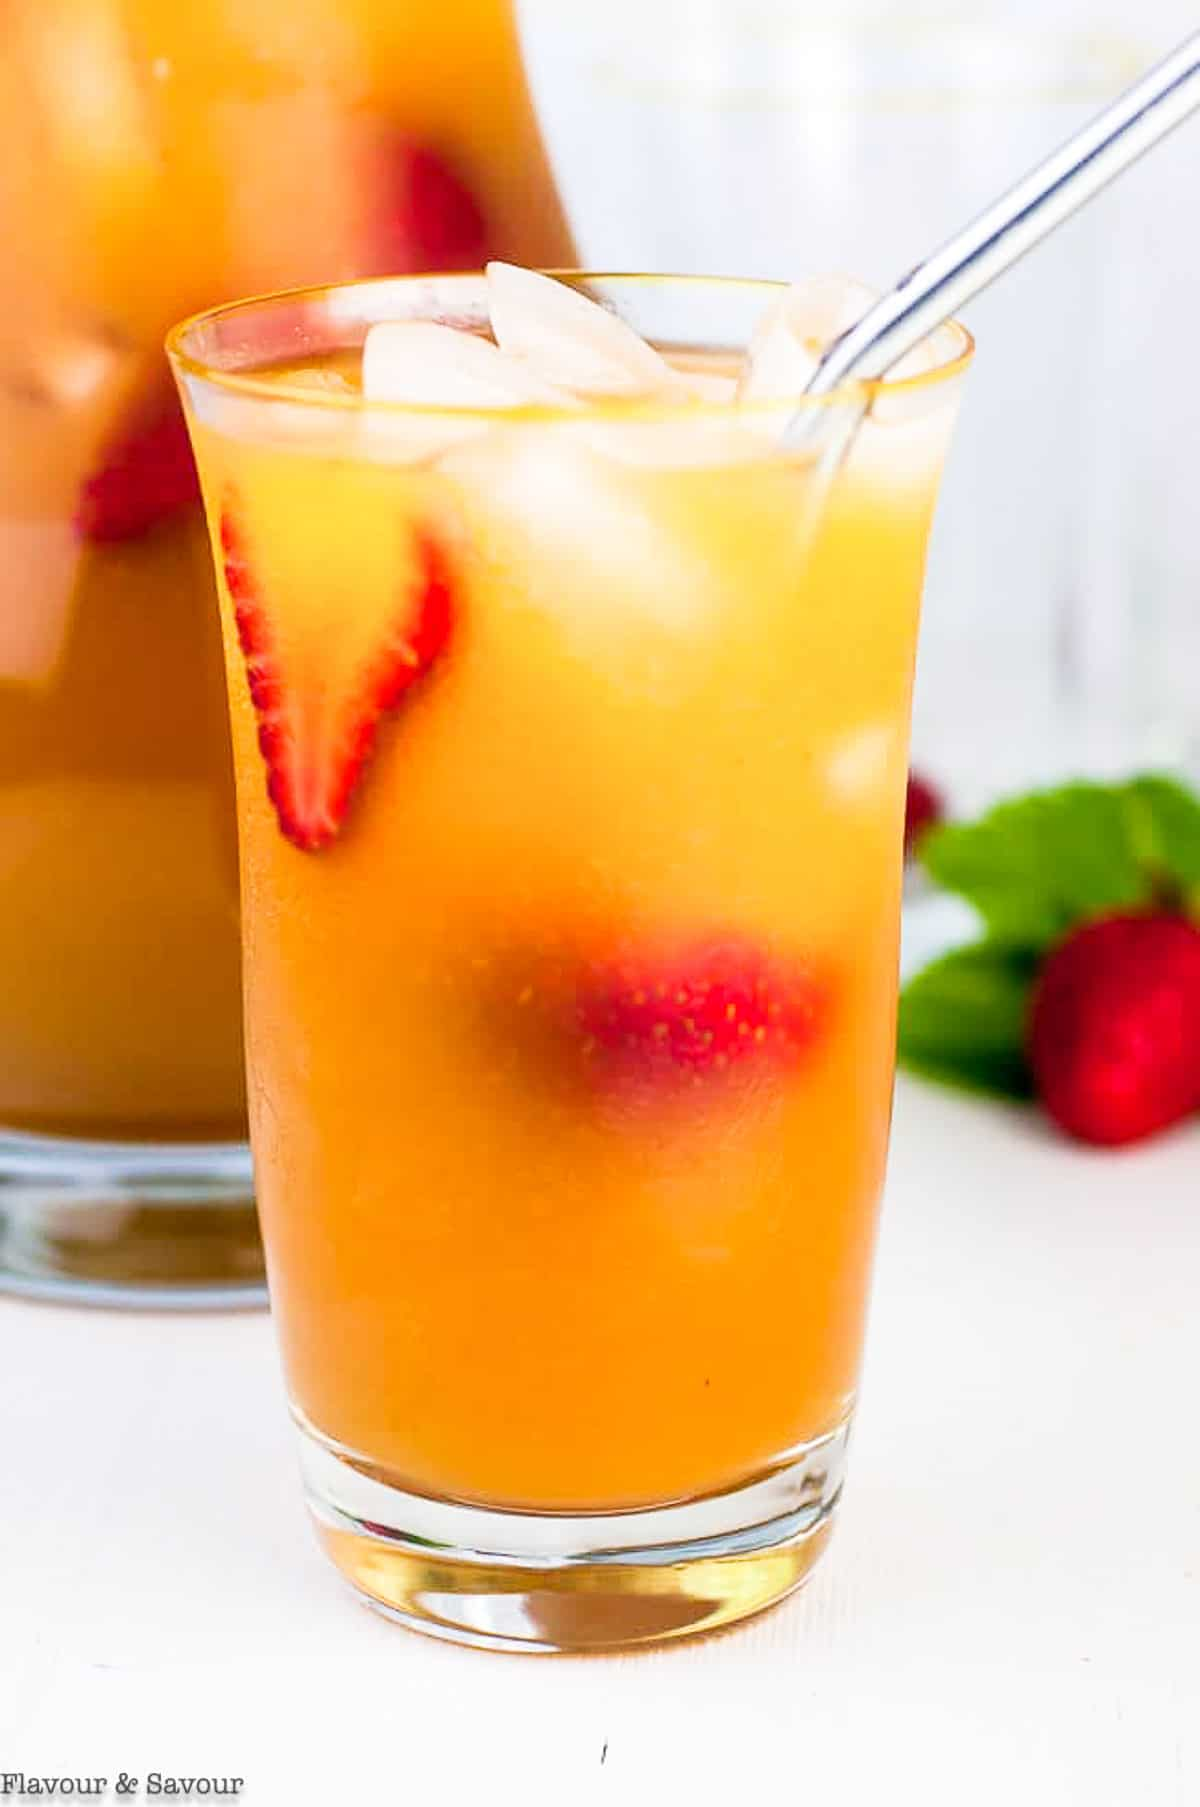 a tall glass of Peach Iced Tea with a metal straw